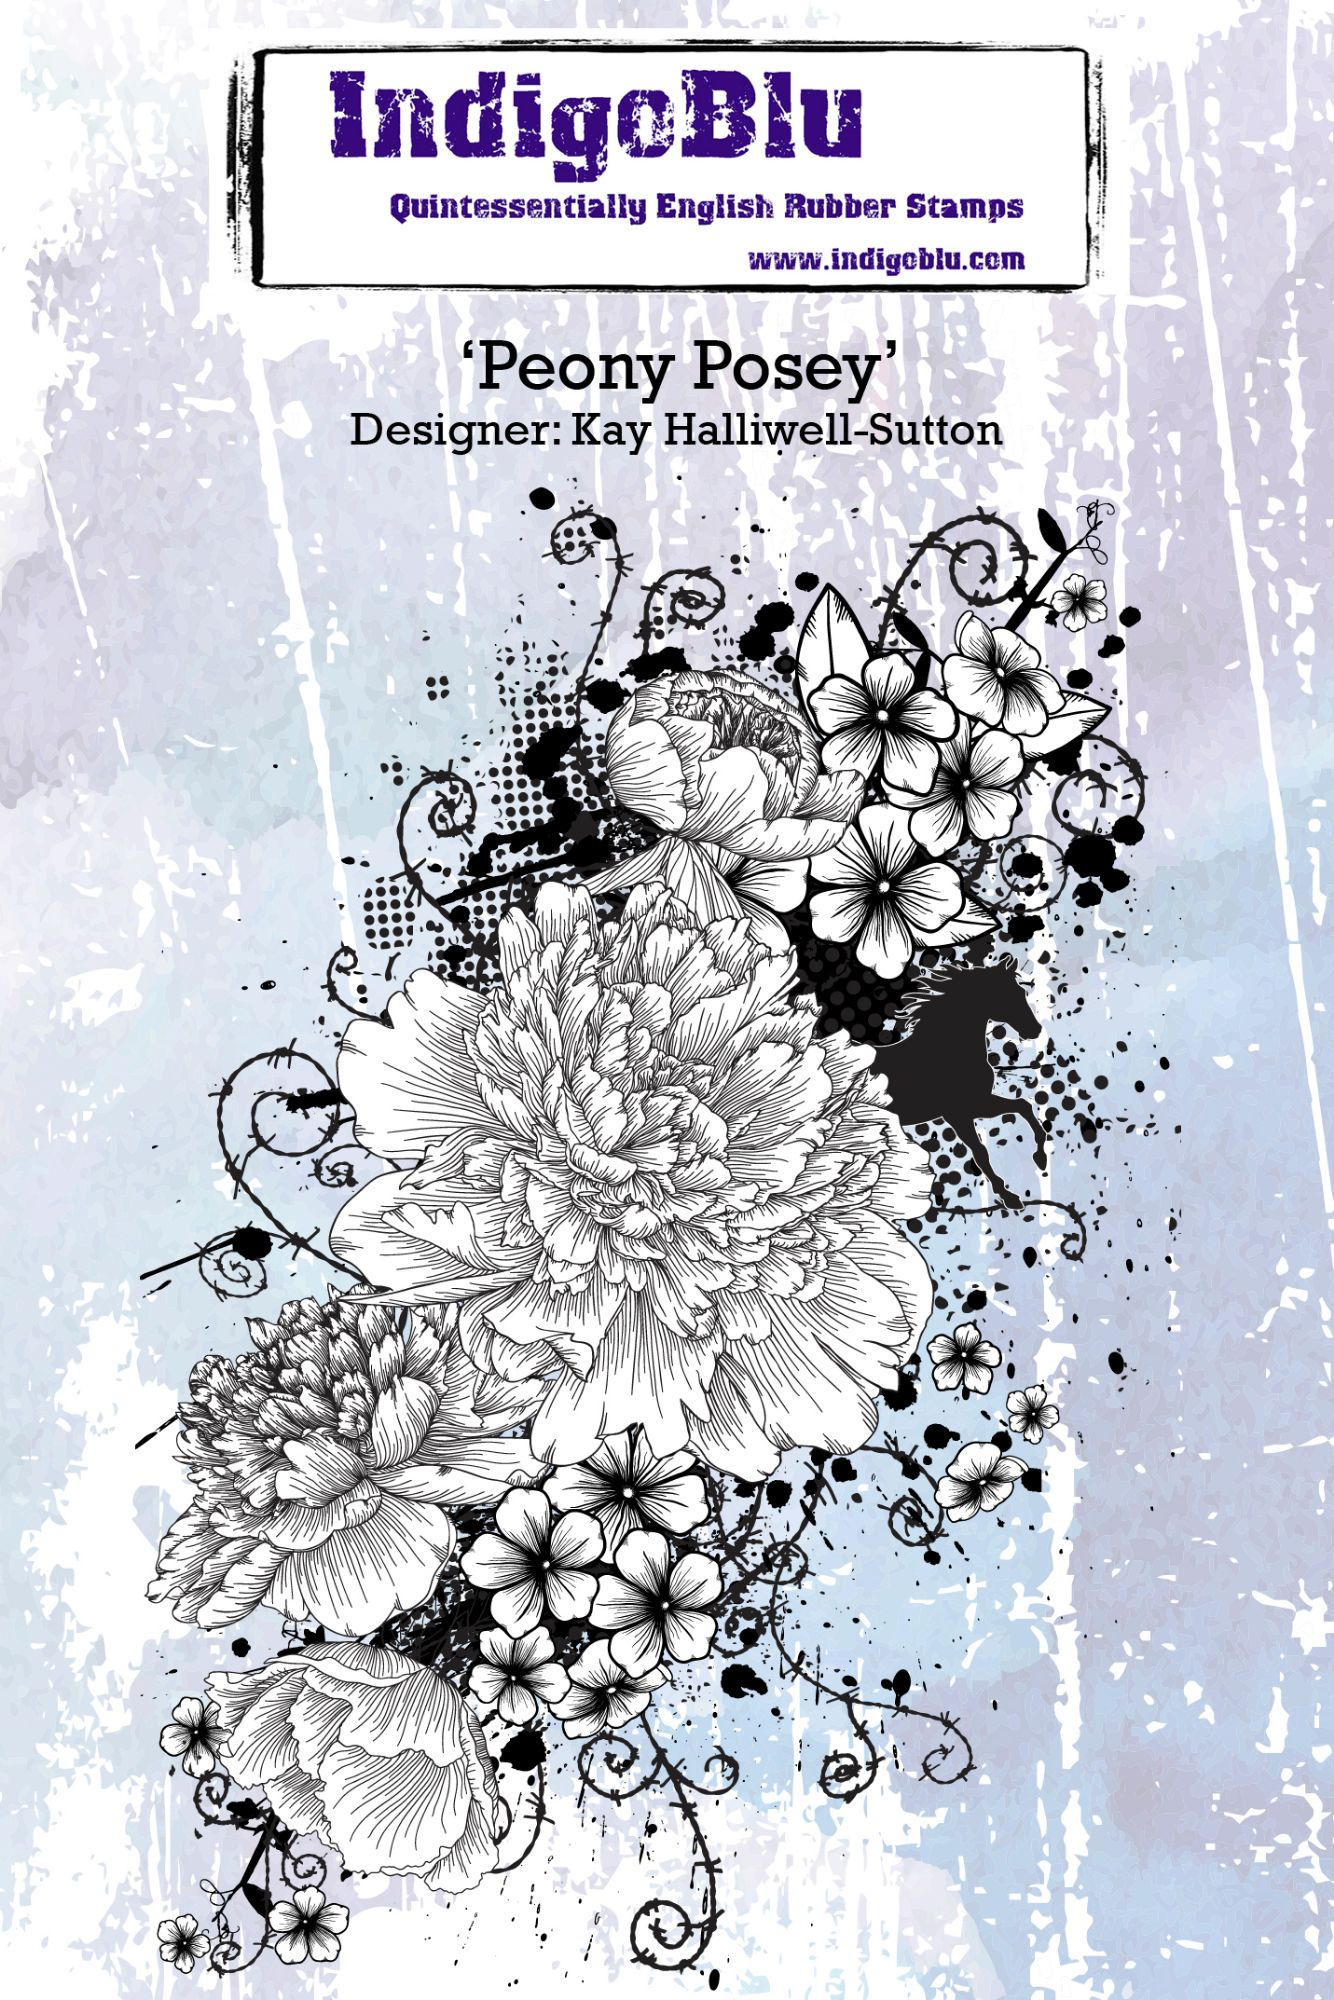 Peony Posey - A6 Red Rubber Stamp by Kay Halliwell-Sutton